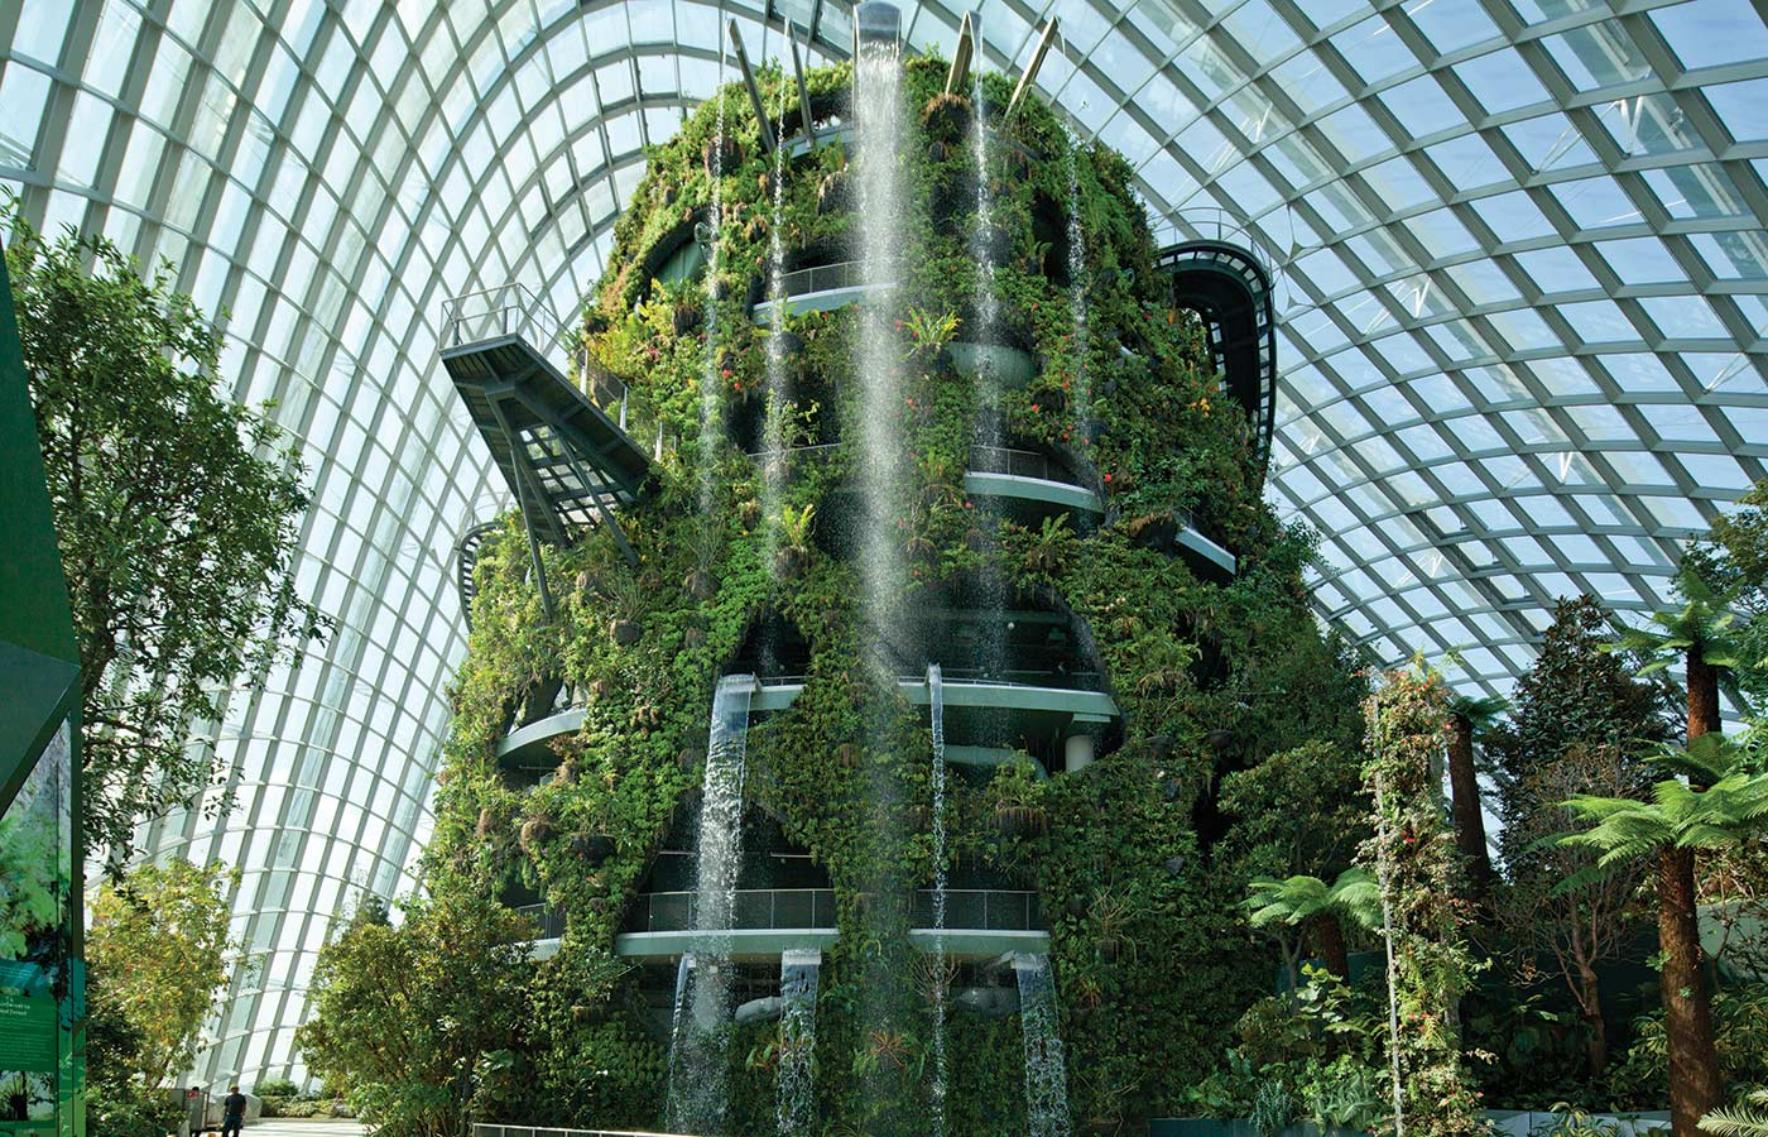 Cooled conservatories gardens by the bay wilkinsoneyre for Architecture futuriste ecologique